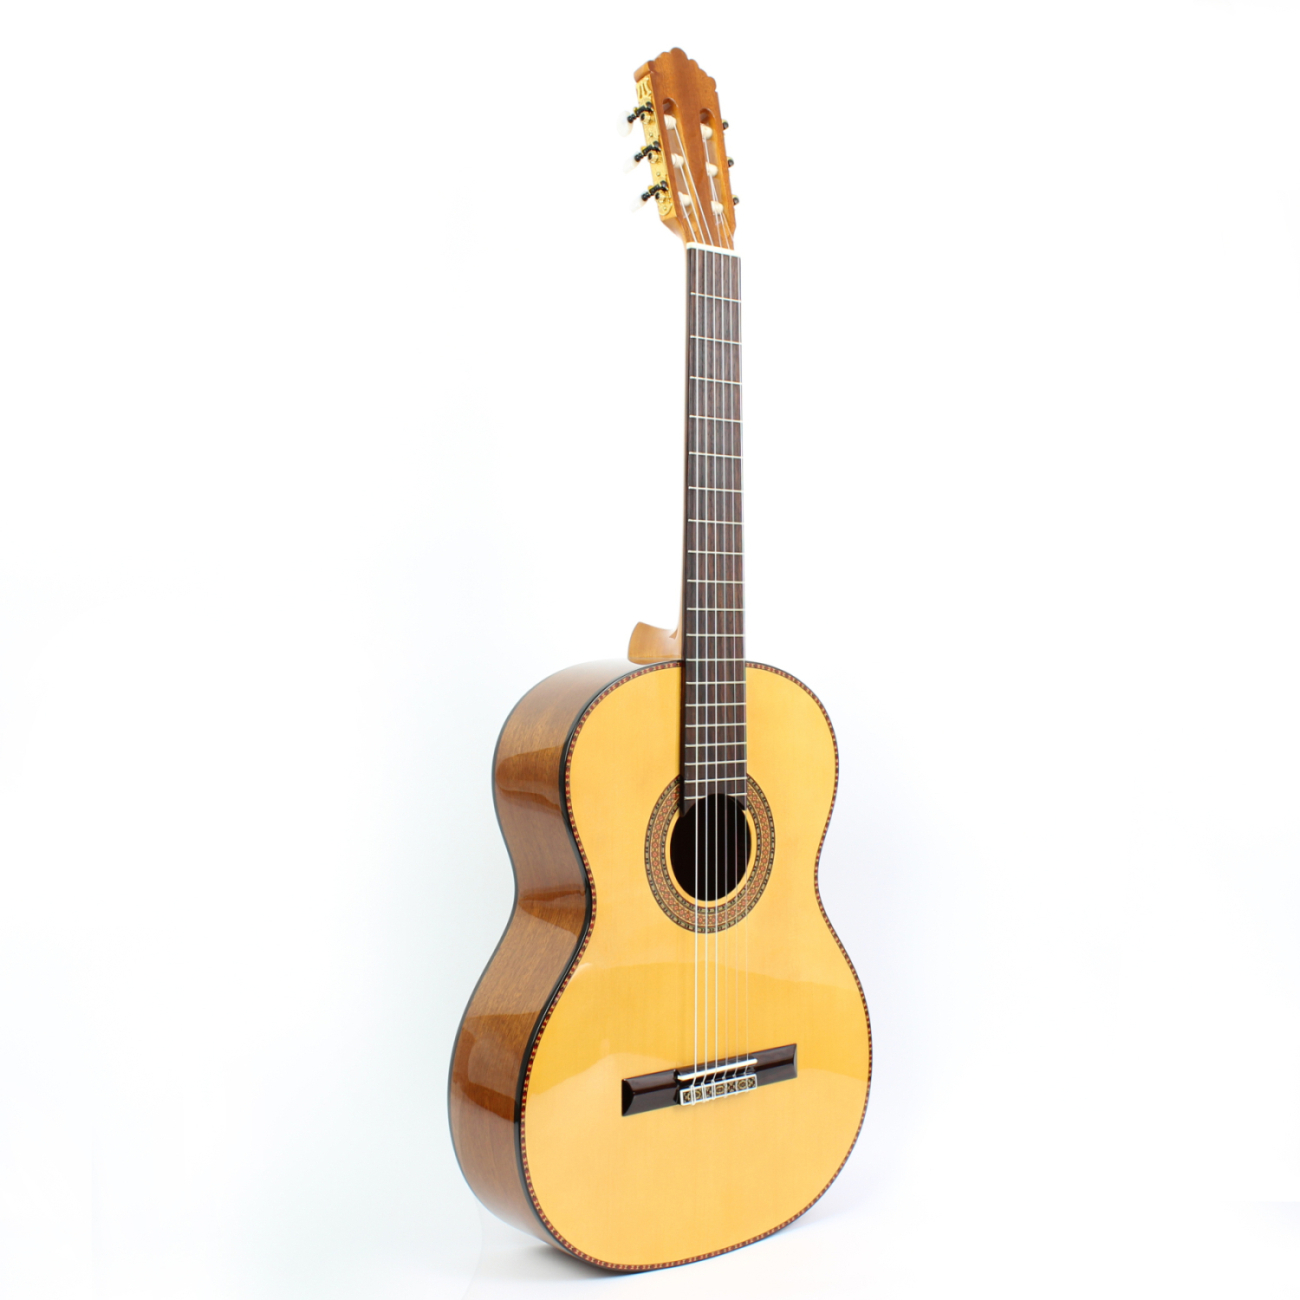 [Flagship store] song toos songtoos/santos s010 classical guitar